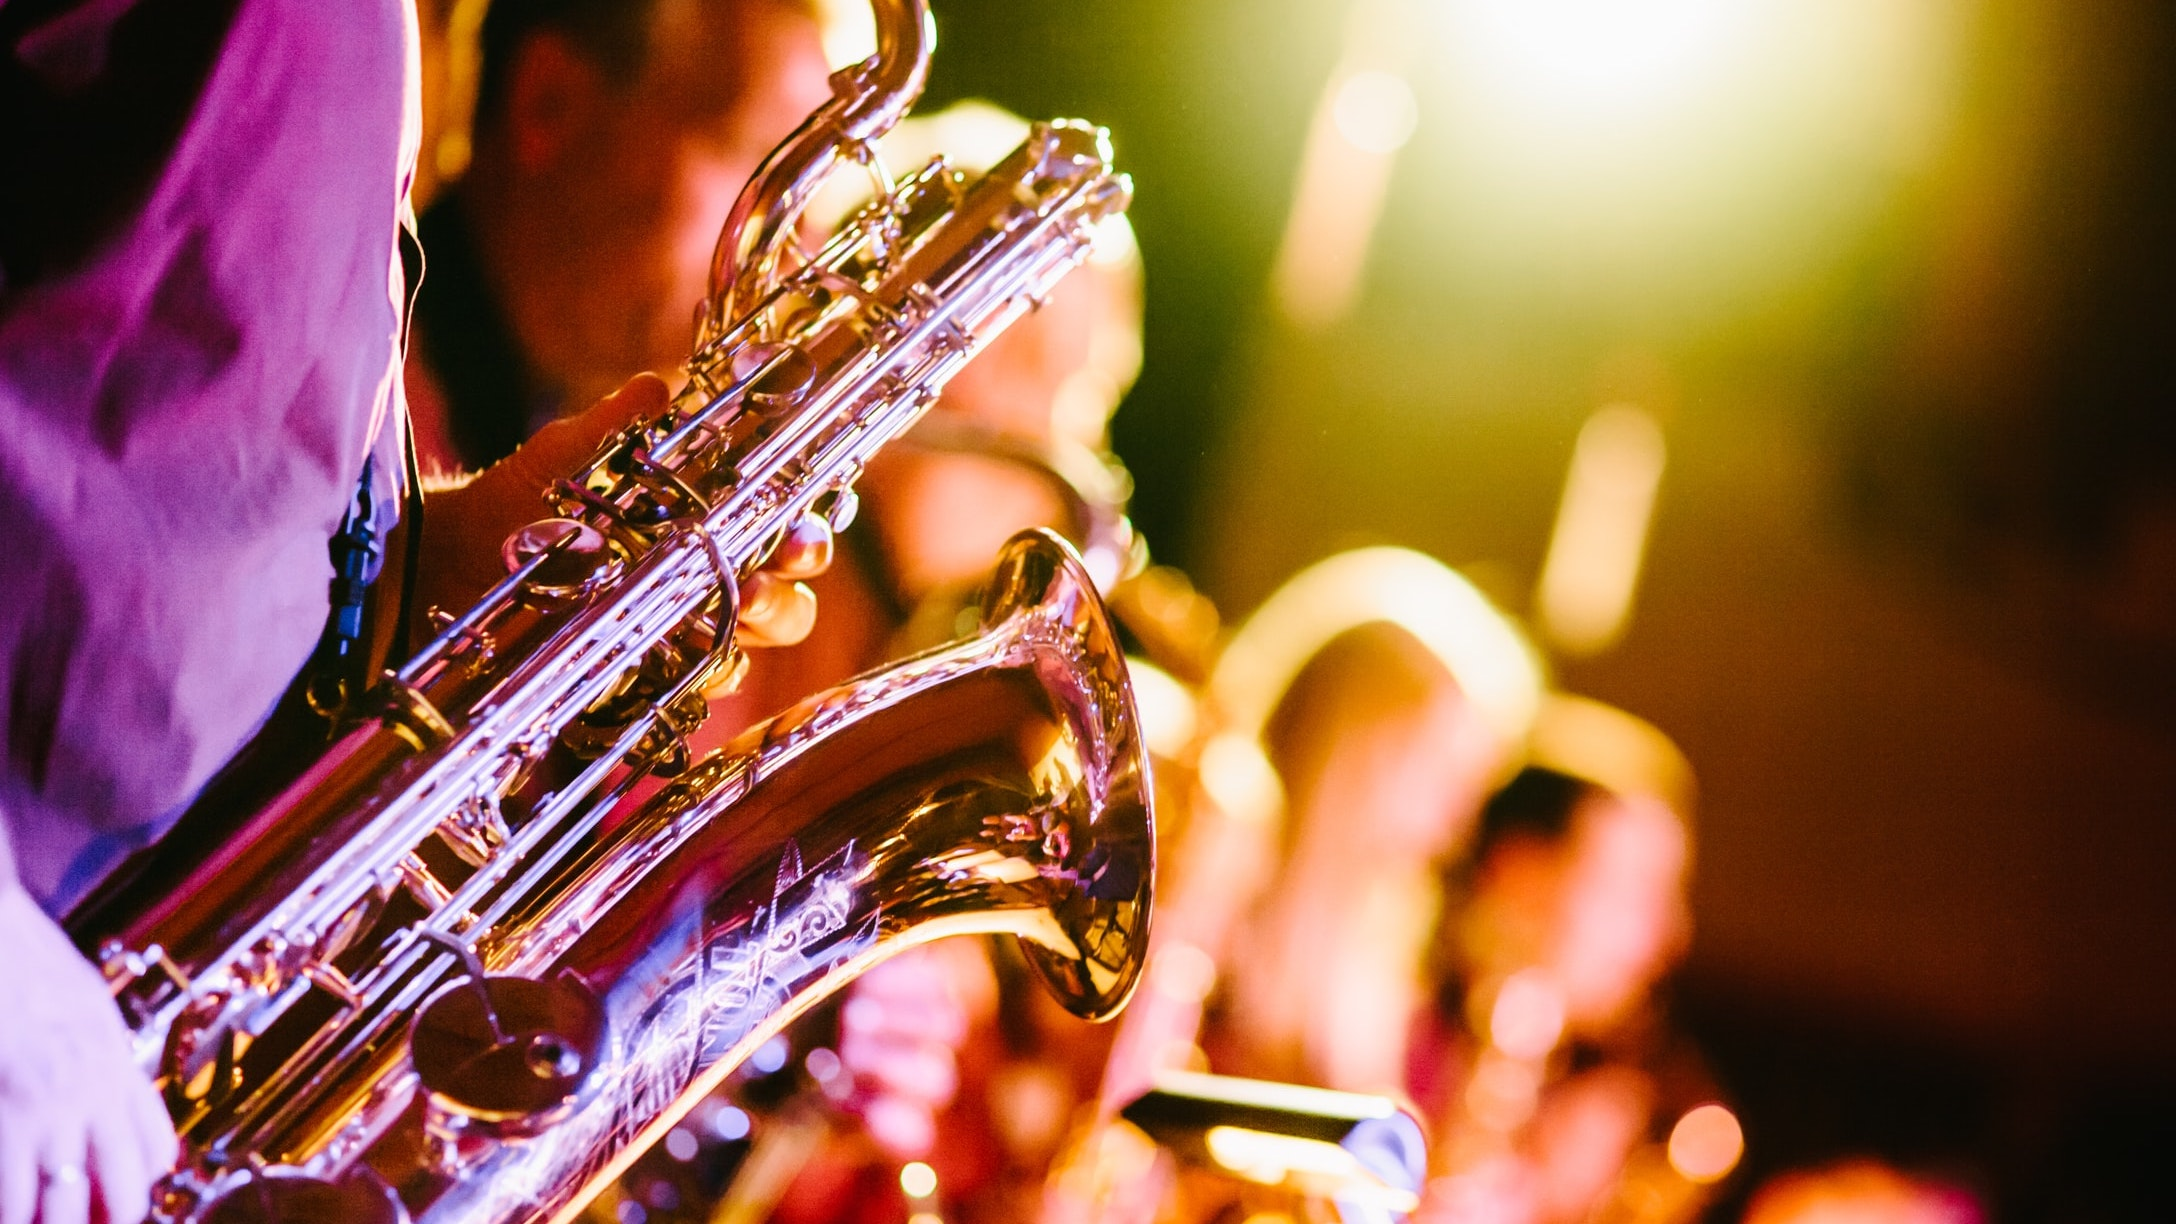 Event-Driven Architectures - Putting Jazz Into Apps